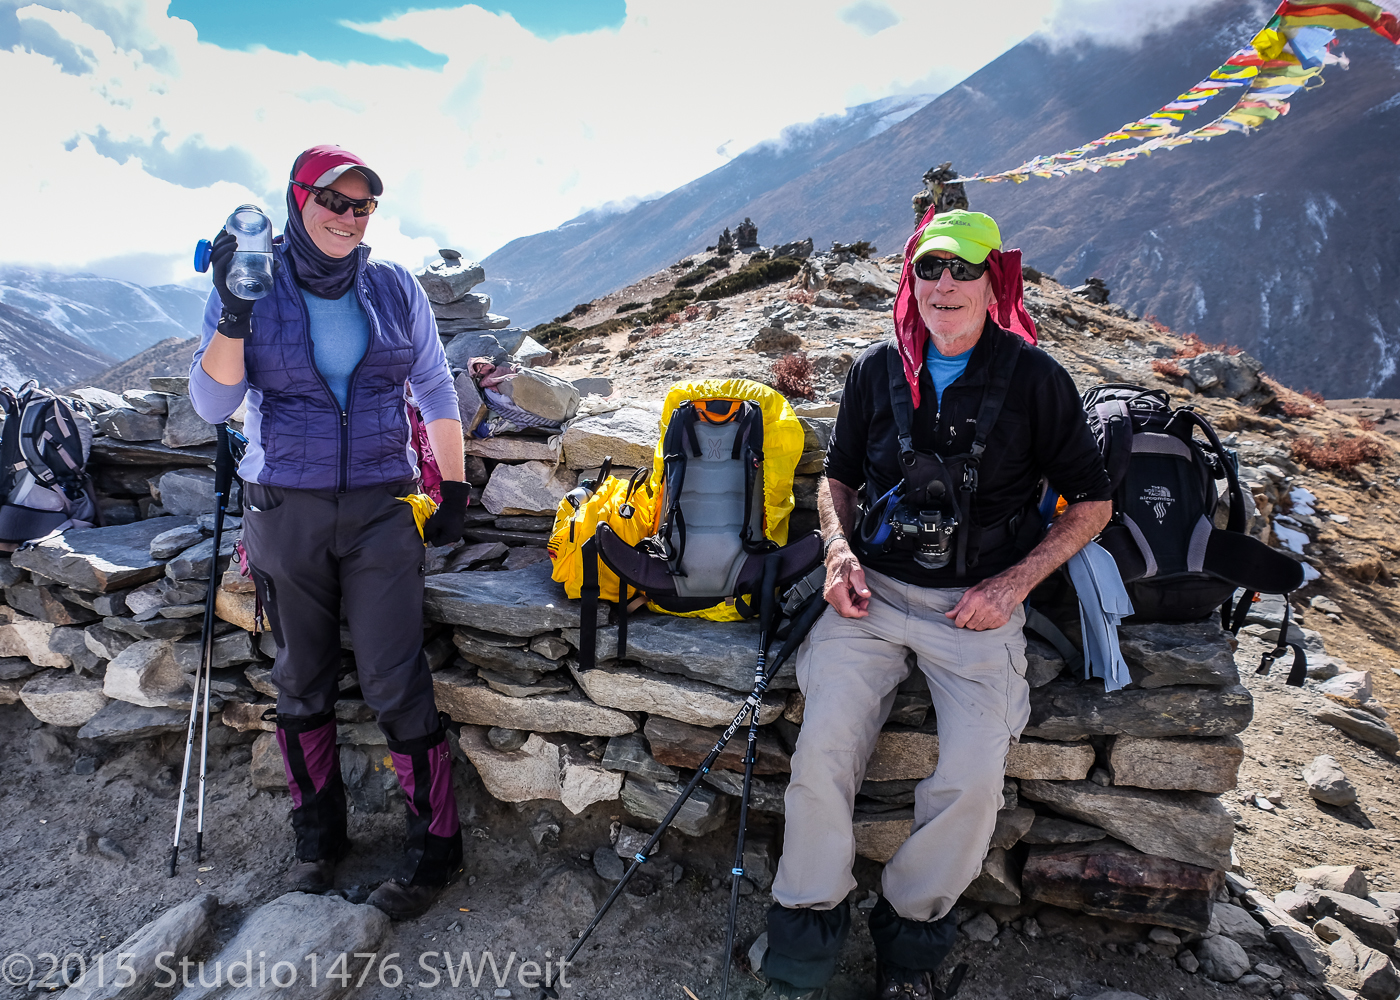 Mt Everest Lodge Trek Nepal Khumbu Valley Trail  Sierra Club